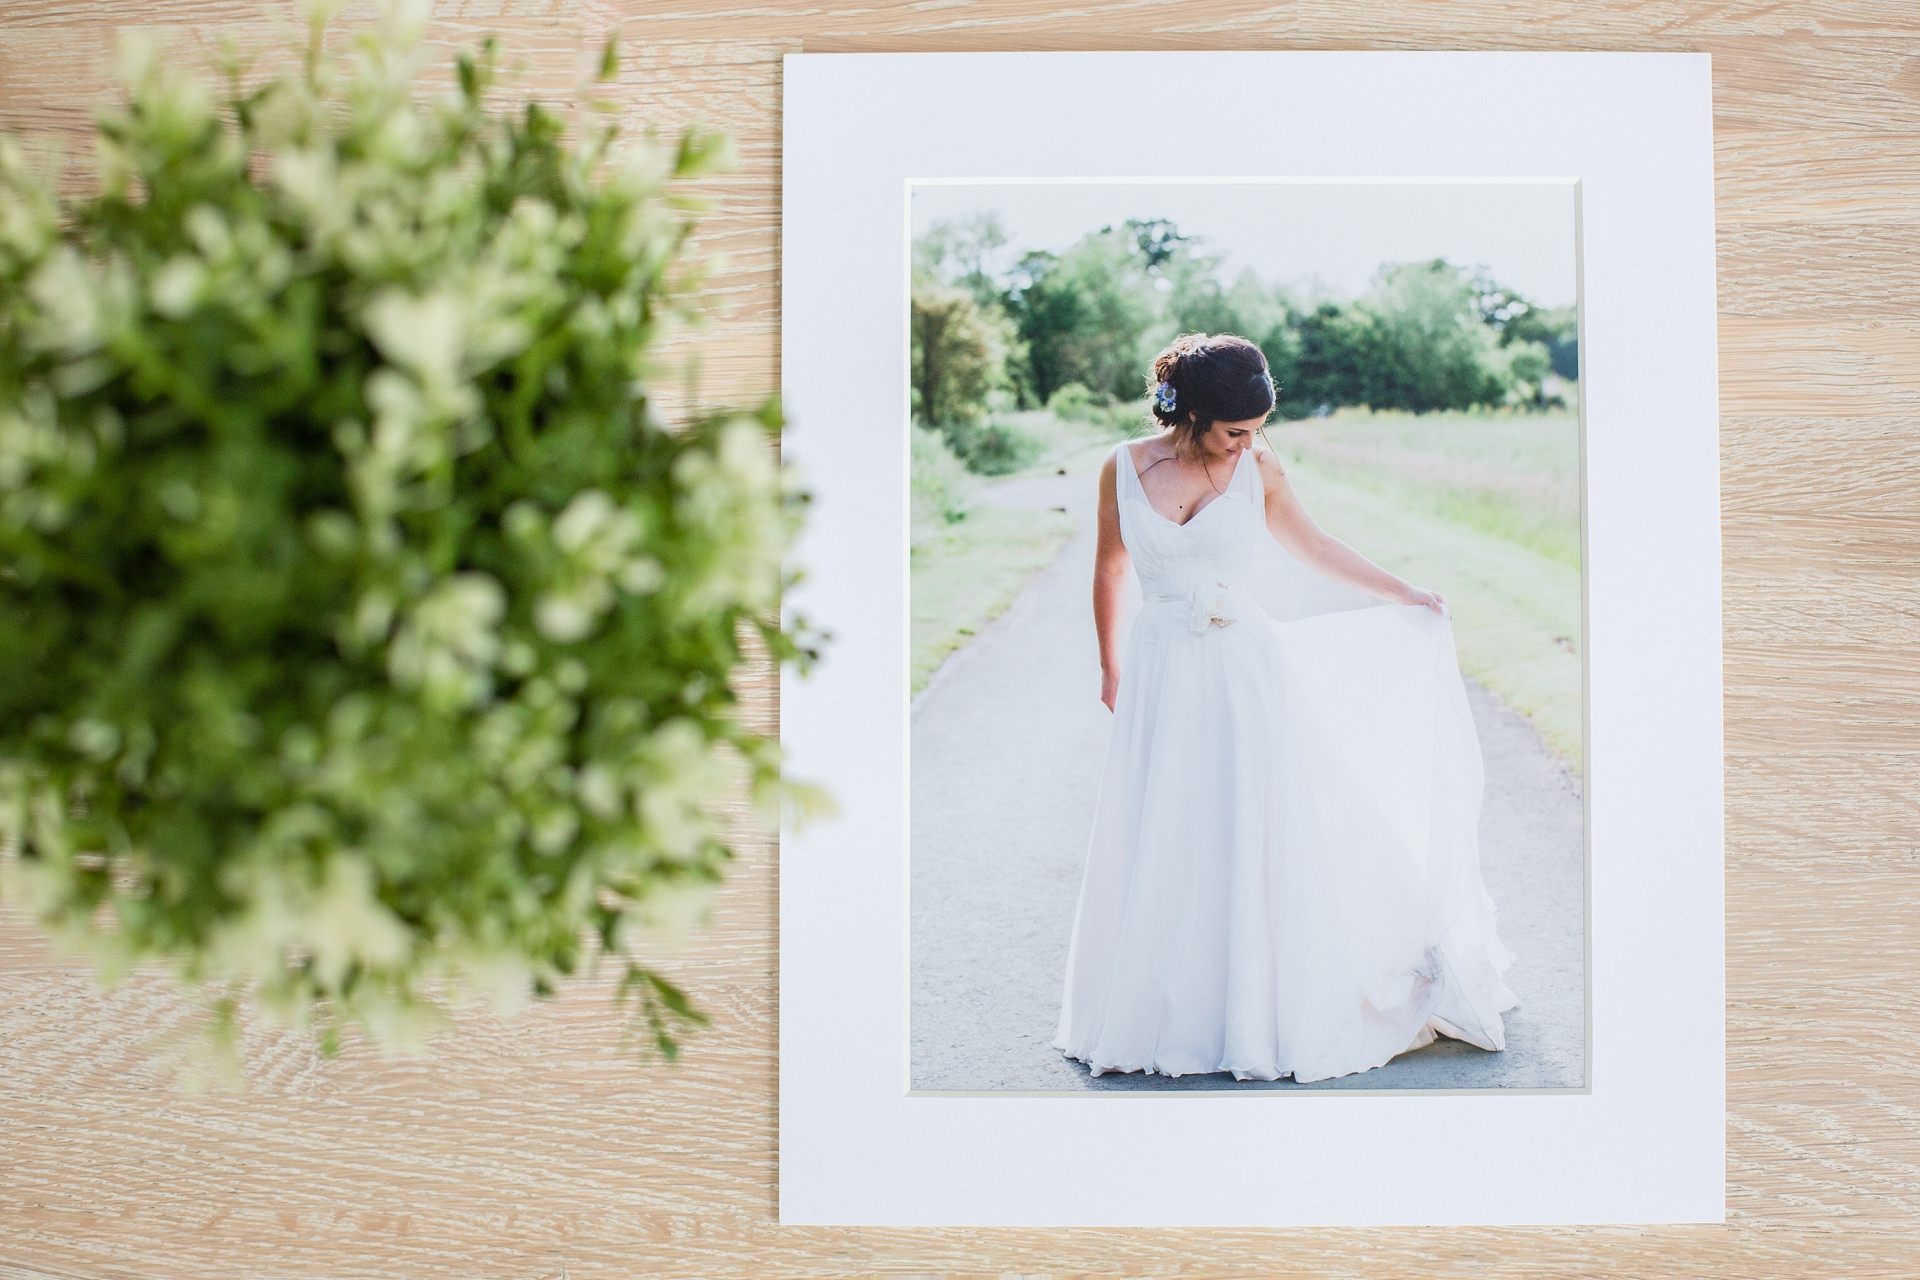 Printing your wedding photos